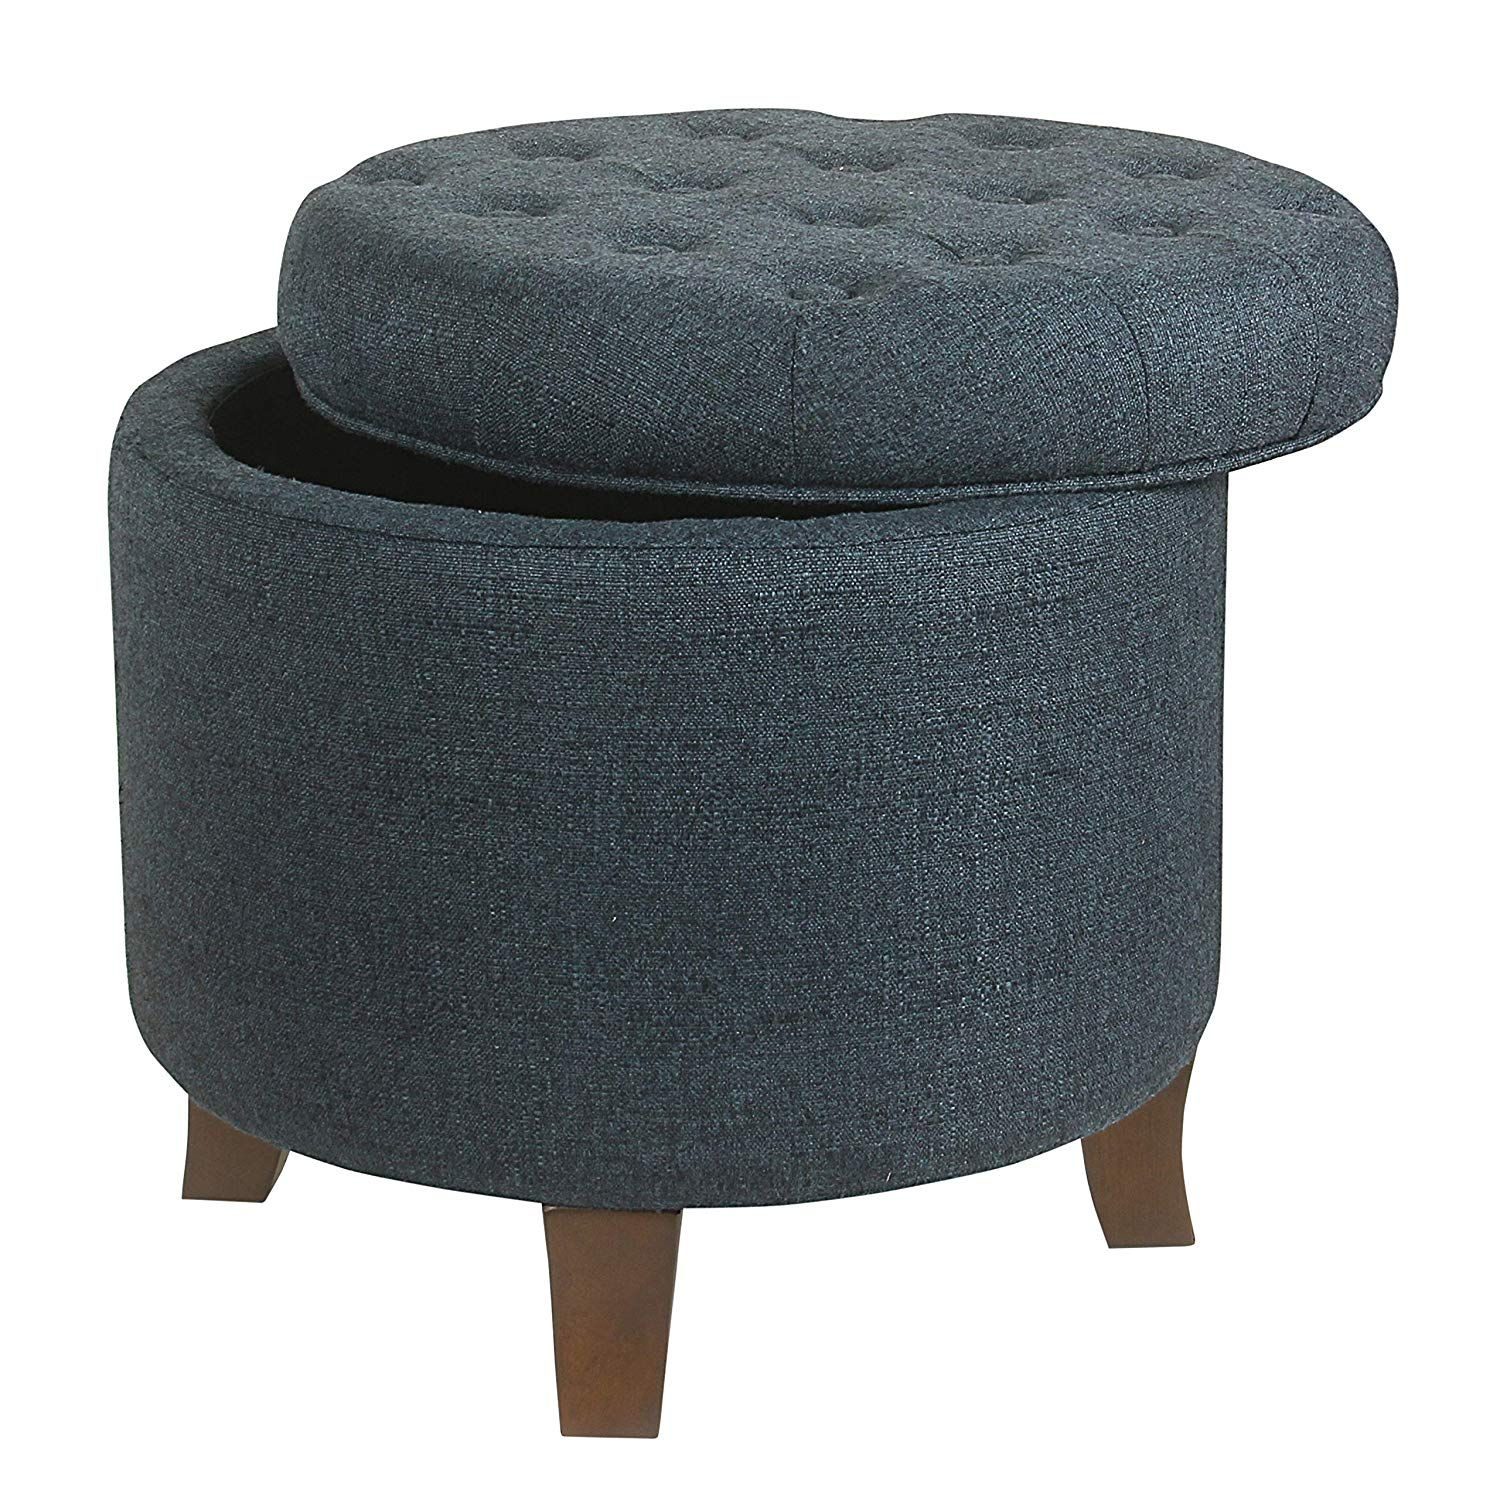 Fine Care 4 Home Llc Upholstered Tufted Storage Ottoman Round Unemploymentrelief Wooden Chair Designs For Living Room Unemploymentrelieforg